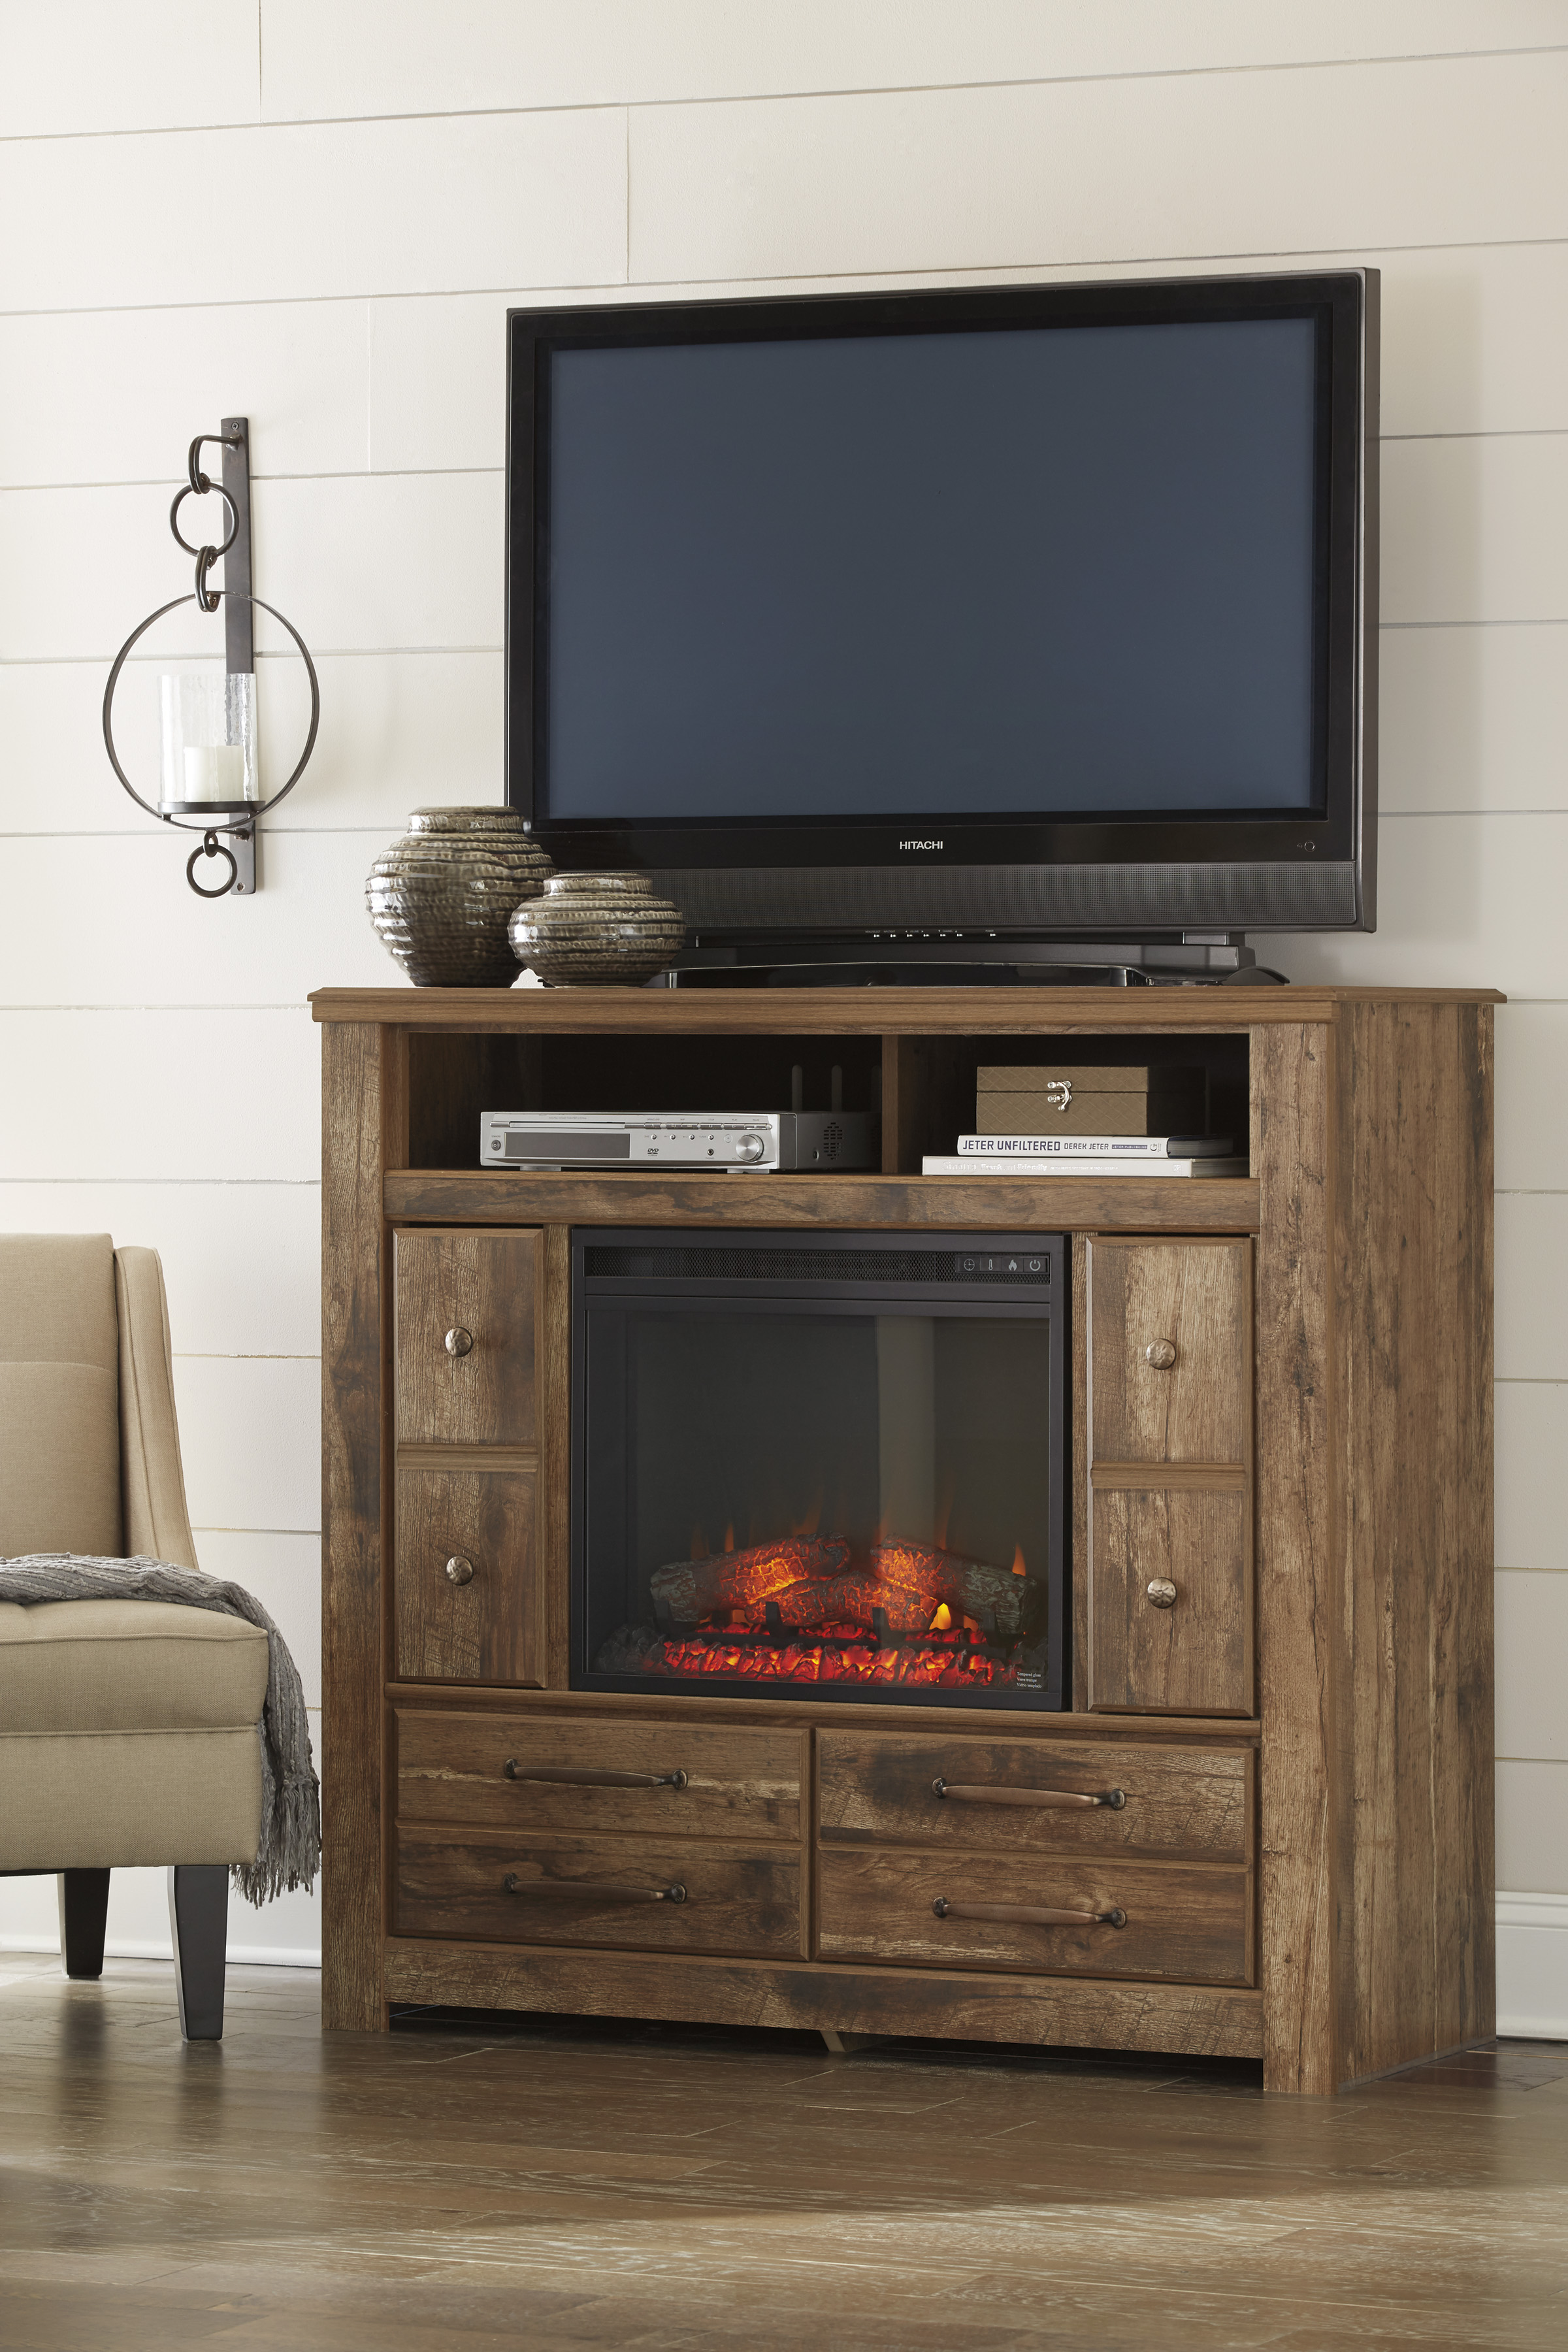 w product store mentor fireplace tv stand dealer furniture best oh option lg evanni ashley